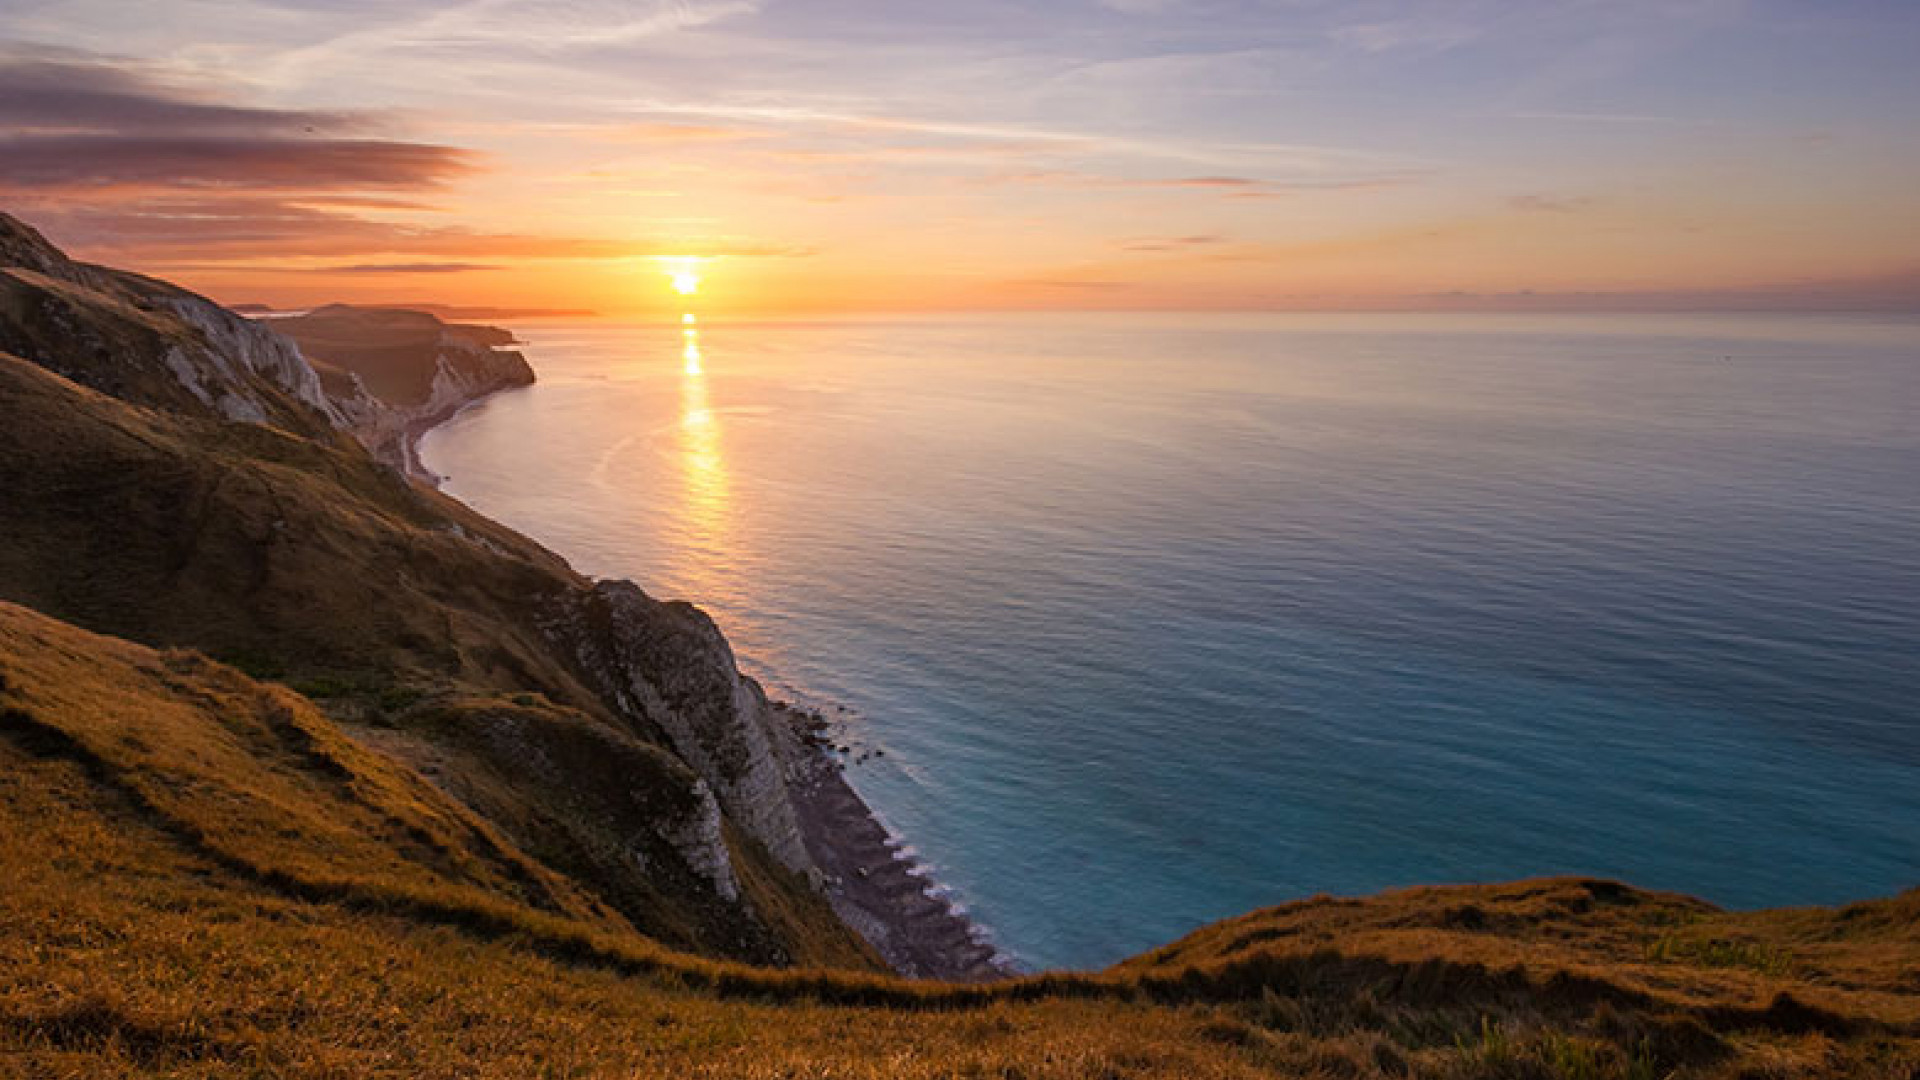 Jurassic-Coast,-Looking-East-from-White-Nothe'-Dorset,-by-Jake-Pike-(Youth-category-winner,-Take-a-view,-2013)